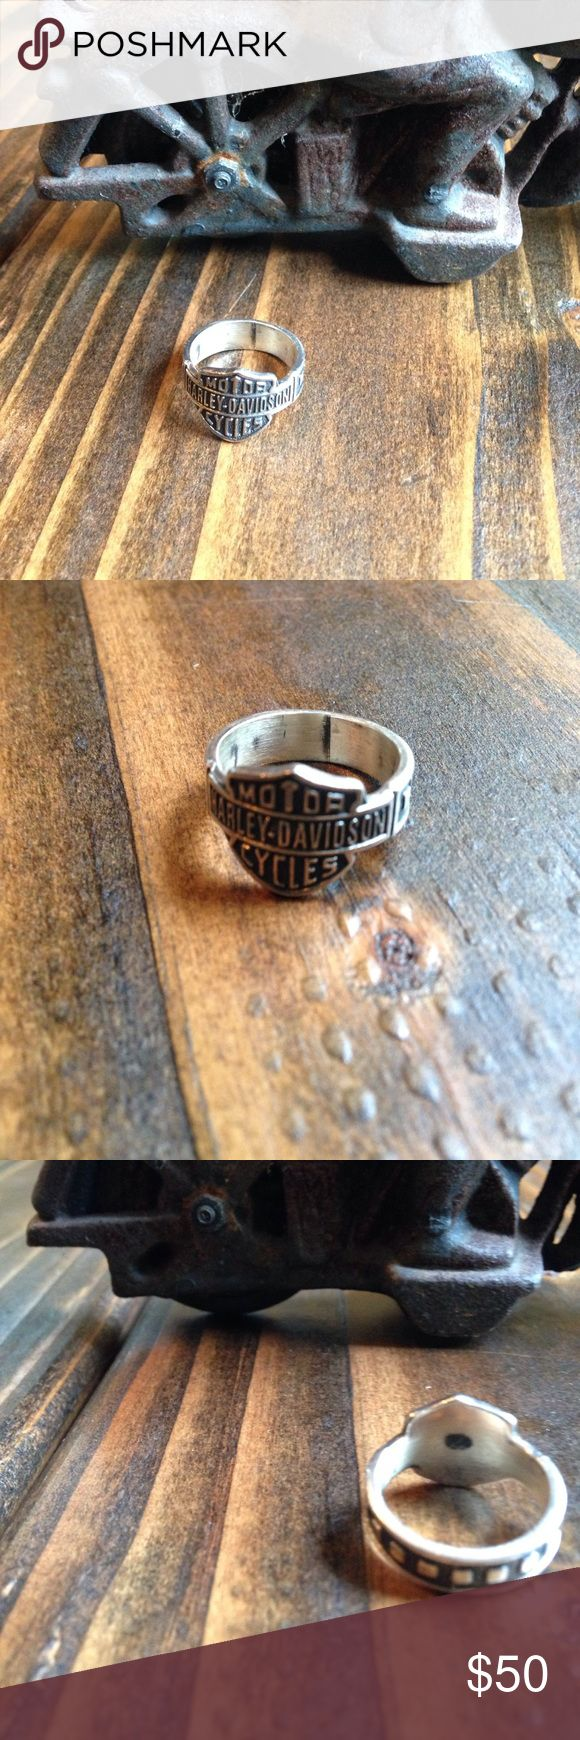 harley davidson rings harley davidson wedding rings Harley Davidson sterling silver ring This ring I believe is a size 6 It IS